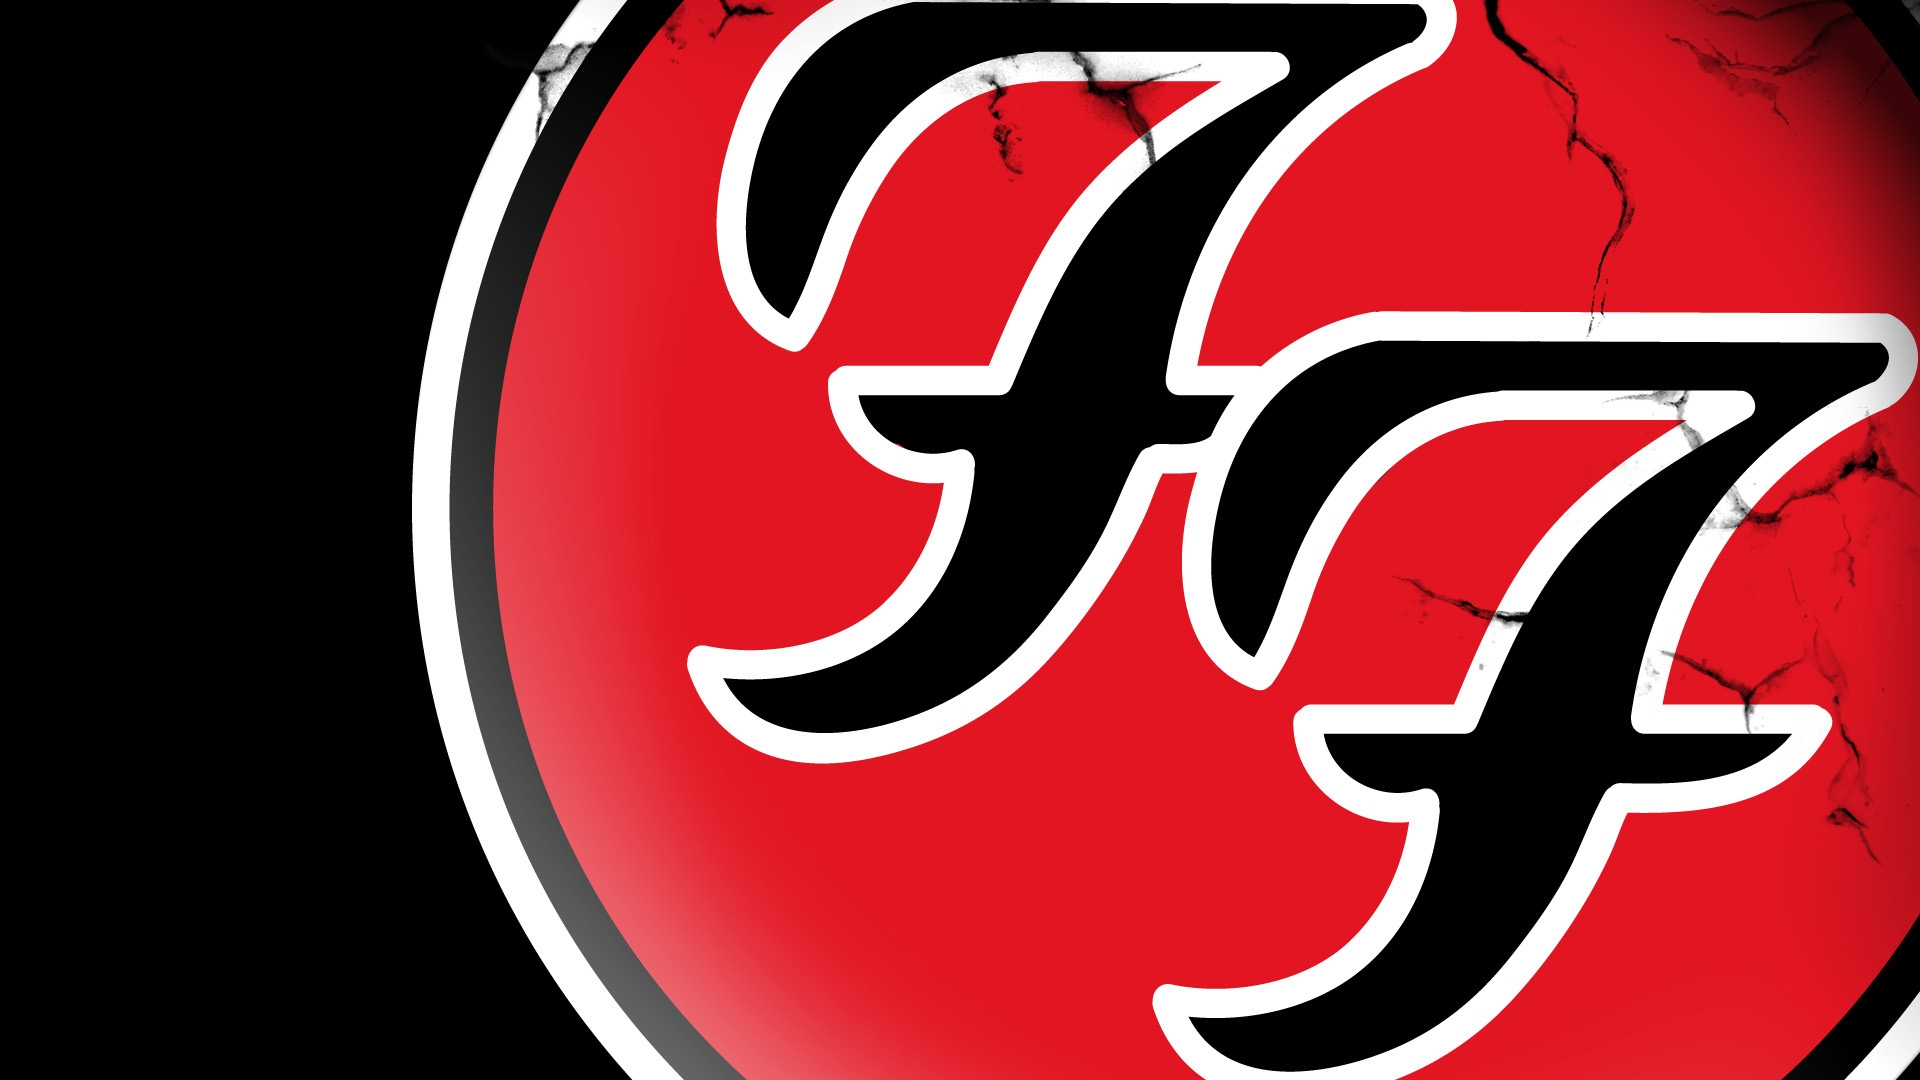 Download Wallpaper 1920x1080 Foo Fighters Symbol Icon Name